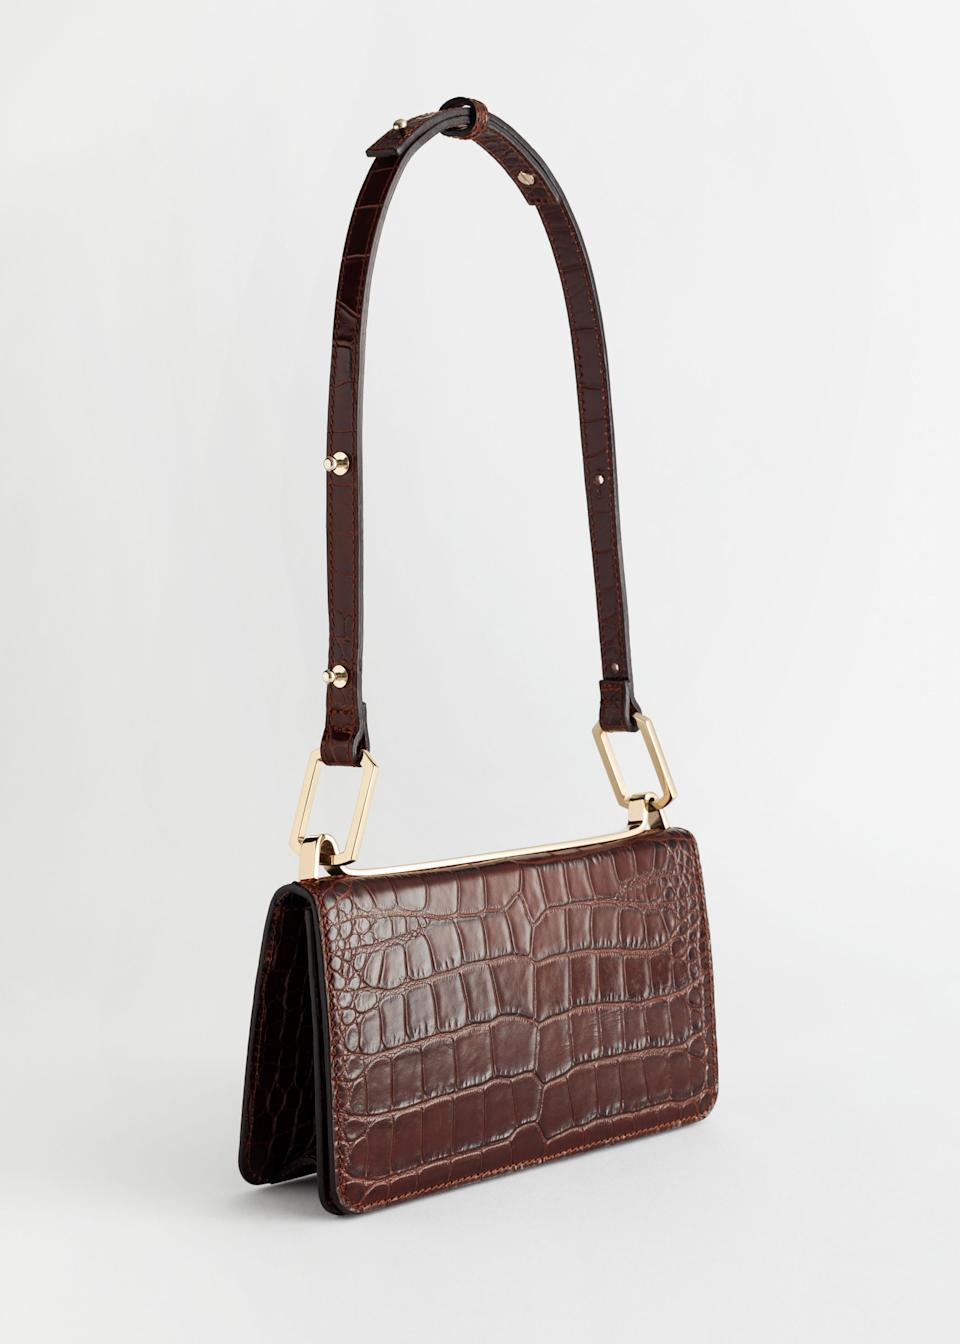 "<br><br><strong>& Other Stories</strong> Duo Buckle Croc Shoulder Bag, $, available at <a href=""https://go.skimresources.com/?id=30283X879131&url=https%3A%2F%2Fwww.stories.com%2Fen_usd%2Fbags%2Fshoulderbags%2Fproduct.duo-buckle-croc-shoulder-bag-beige.0783766008.html"" rel=""nofollow noopener"" target=""_blank"" data-ylk=""slk:& Other Stories"" class=""link rapid-noclick-resp"">& Other Stories</a>"